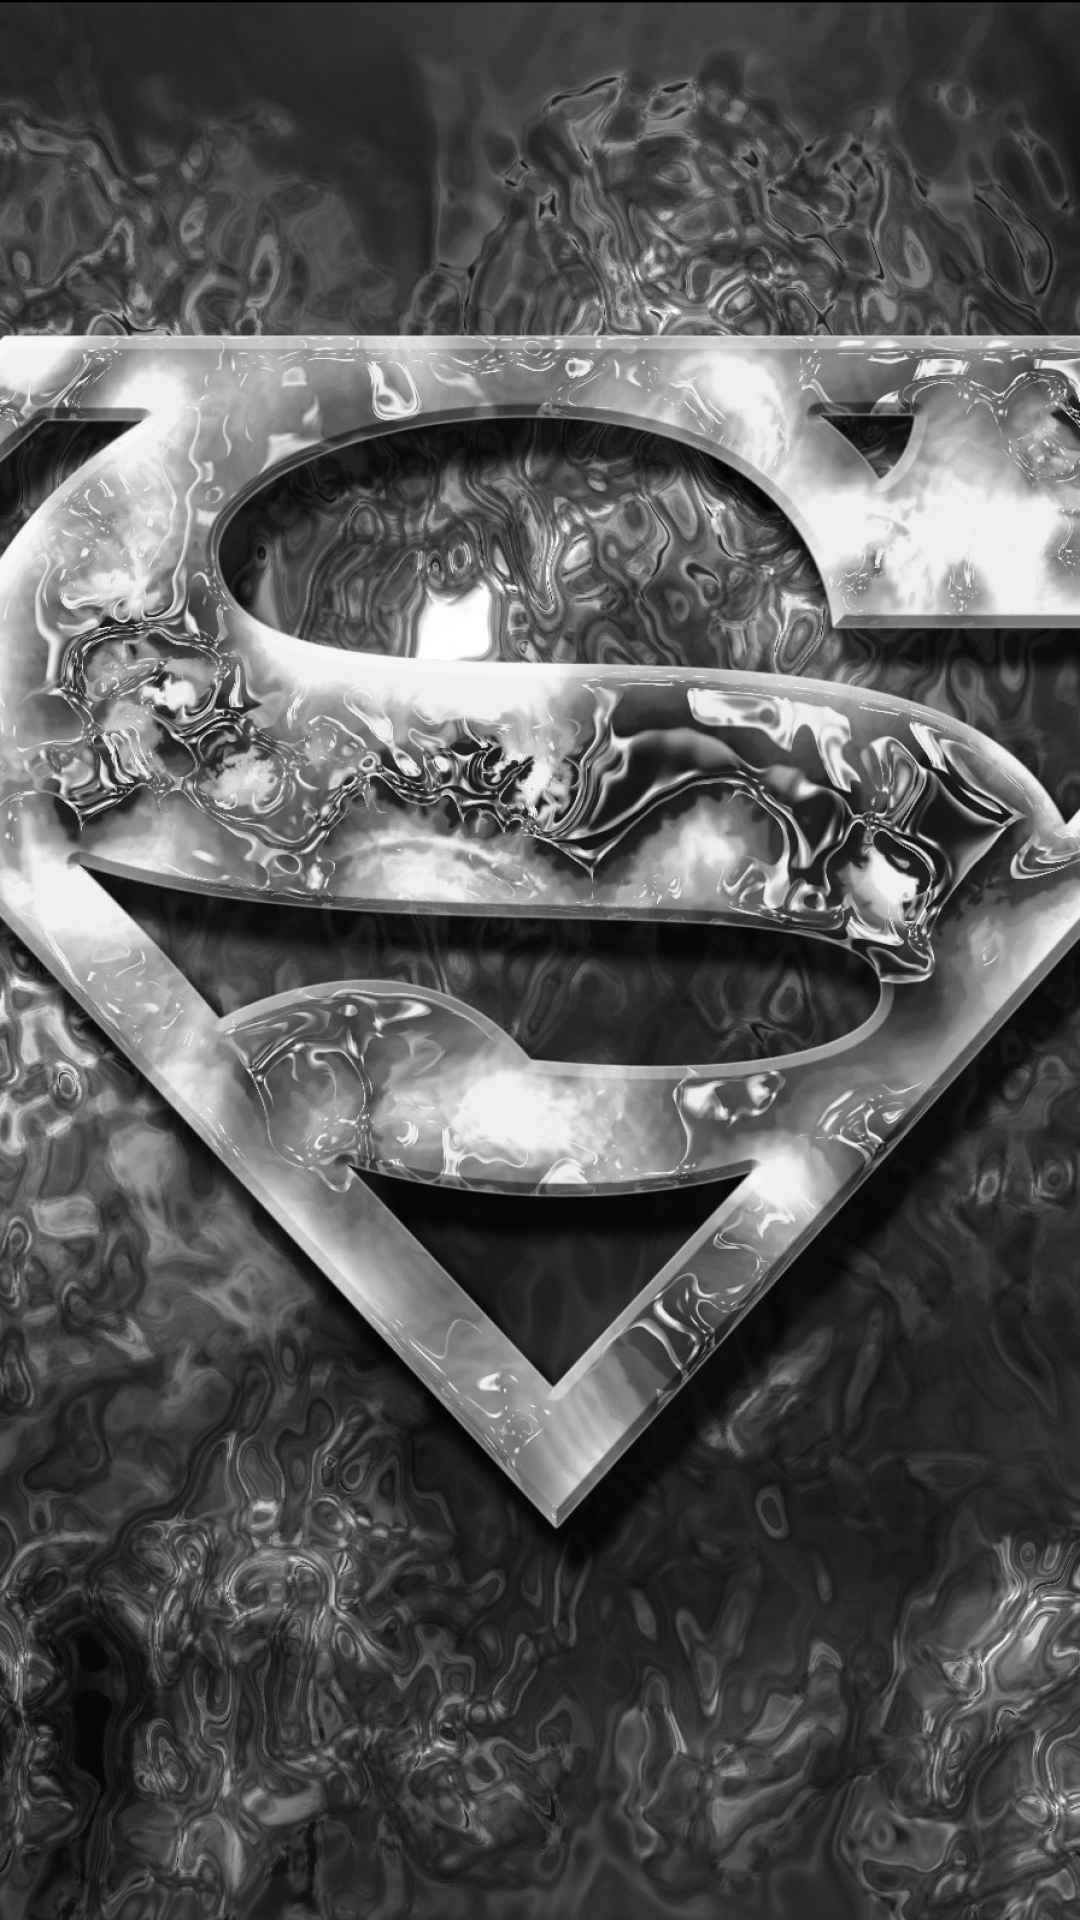 Hd Wallpapers For Iphone X 1080p Superman Wallpaper Free Downloads 1080x1920 Download Hd Wallpaper Wallpapertip